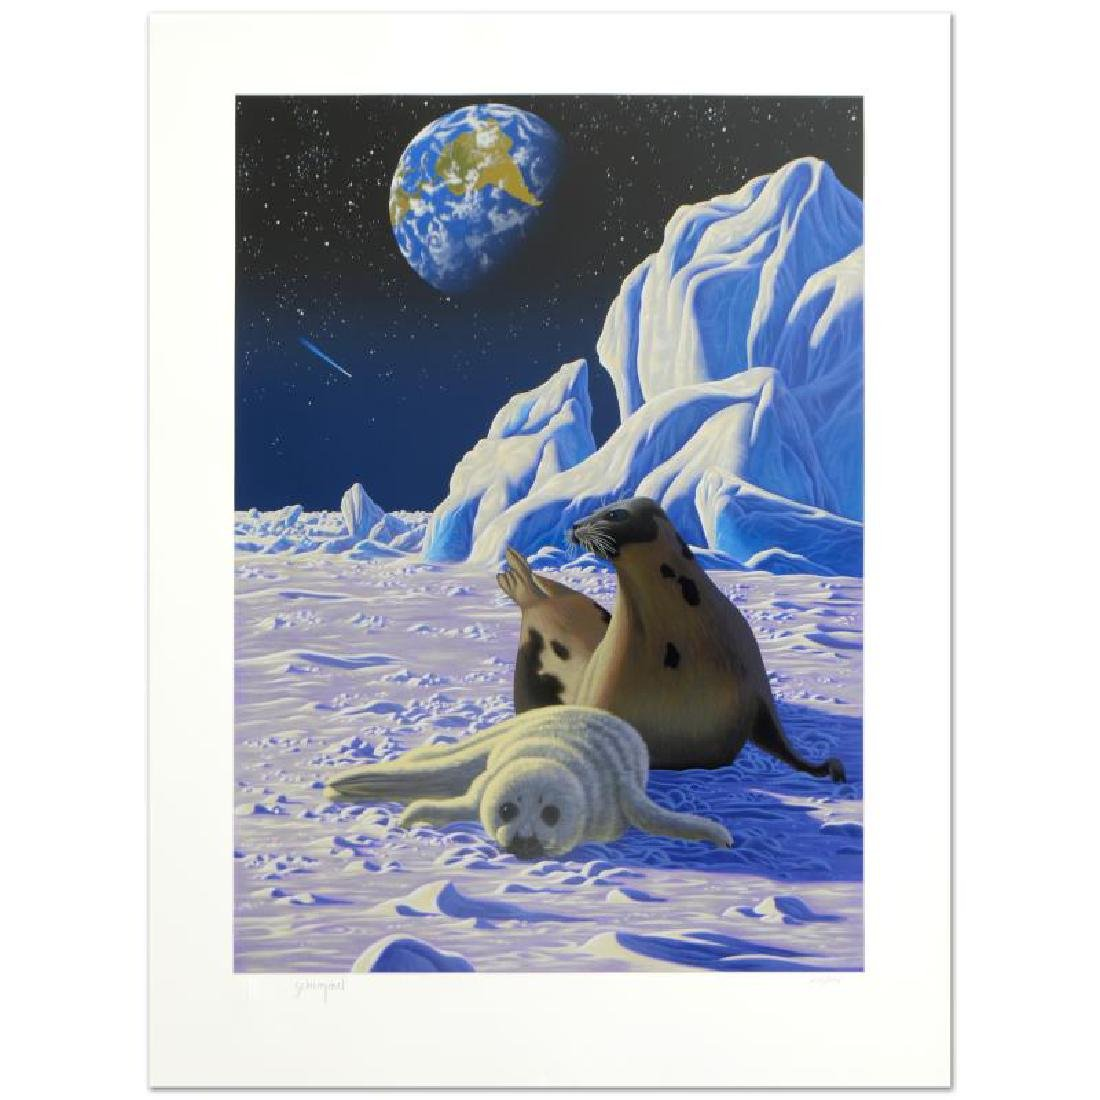 The End of Innocence Limited Edition Serigraph by